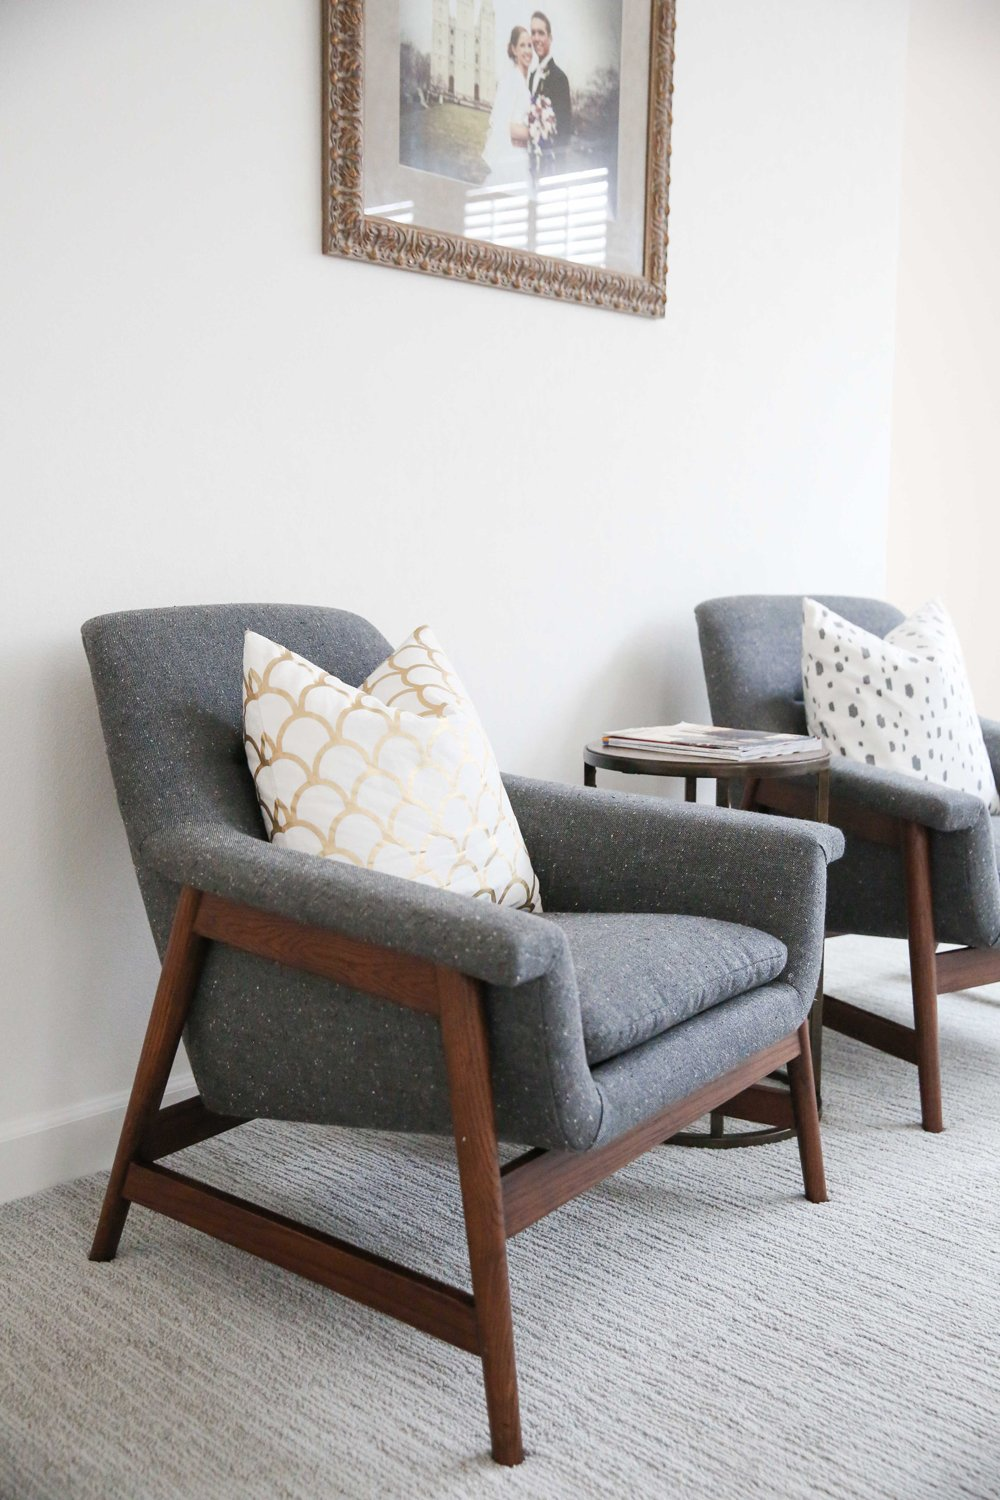 Merrick s Art West Elm Theo Show Wood Chair. Merrick s Art    Style   Sewing for the Everyday Girl   Merrick At